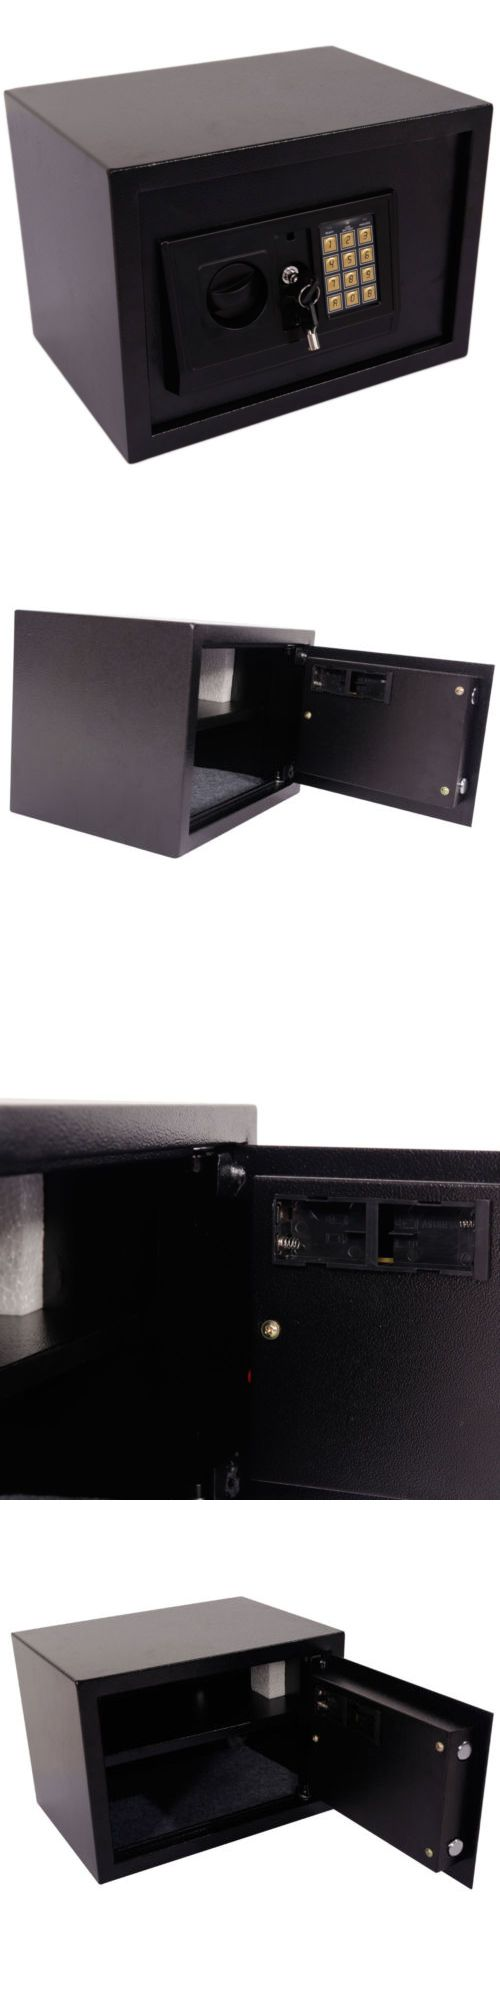 Safes 121836: Small Safe Box Digital Electronic Keypad Lock Depository Security Home Gun Lock -> BUY IT NOW ONLY: $36.99 on eBay!